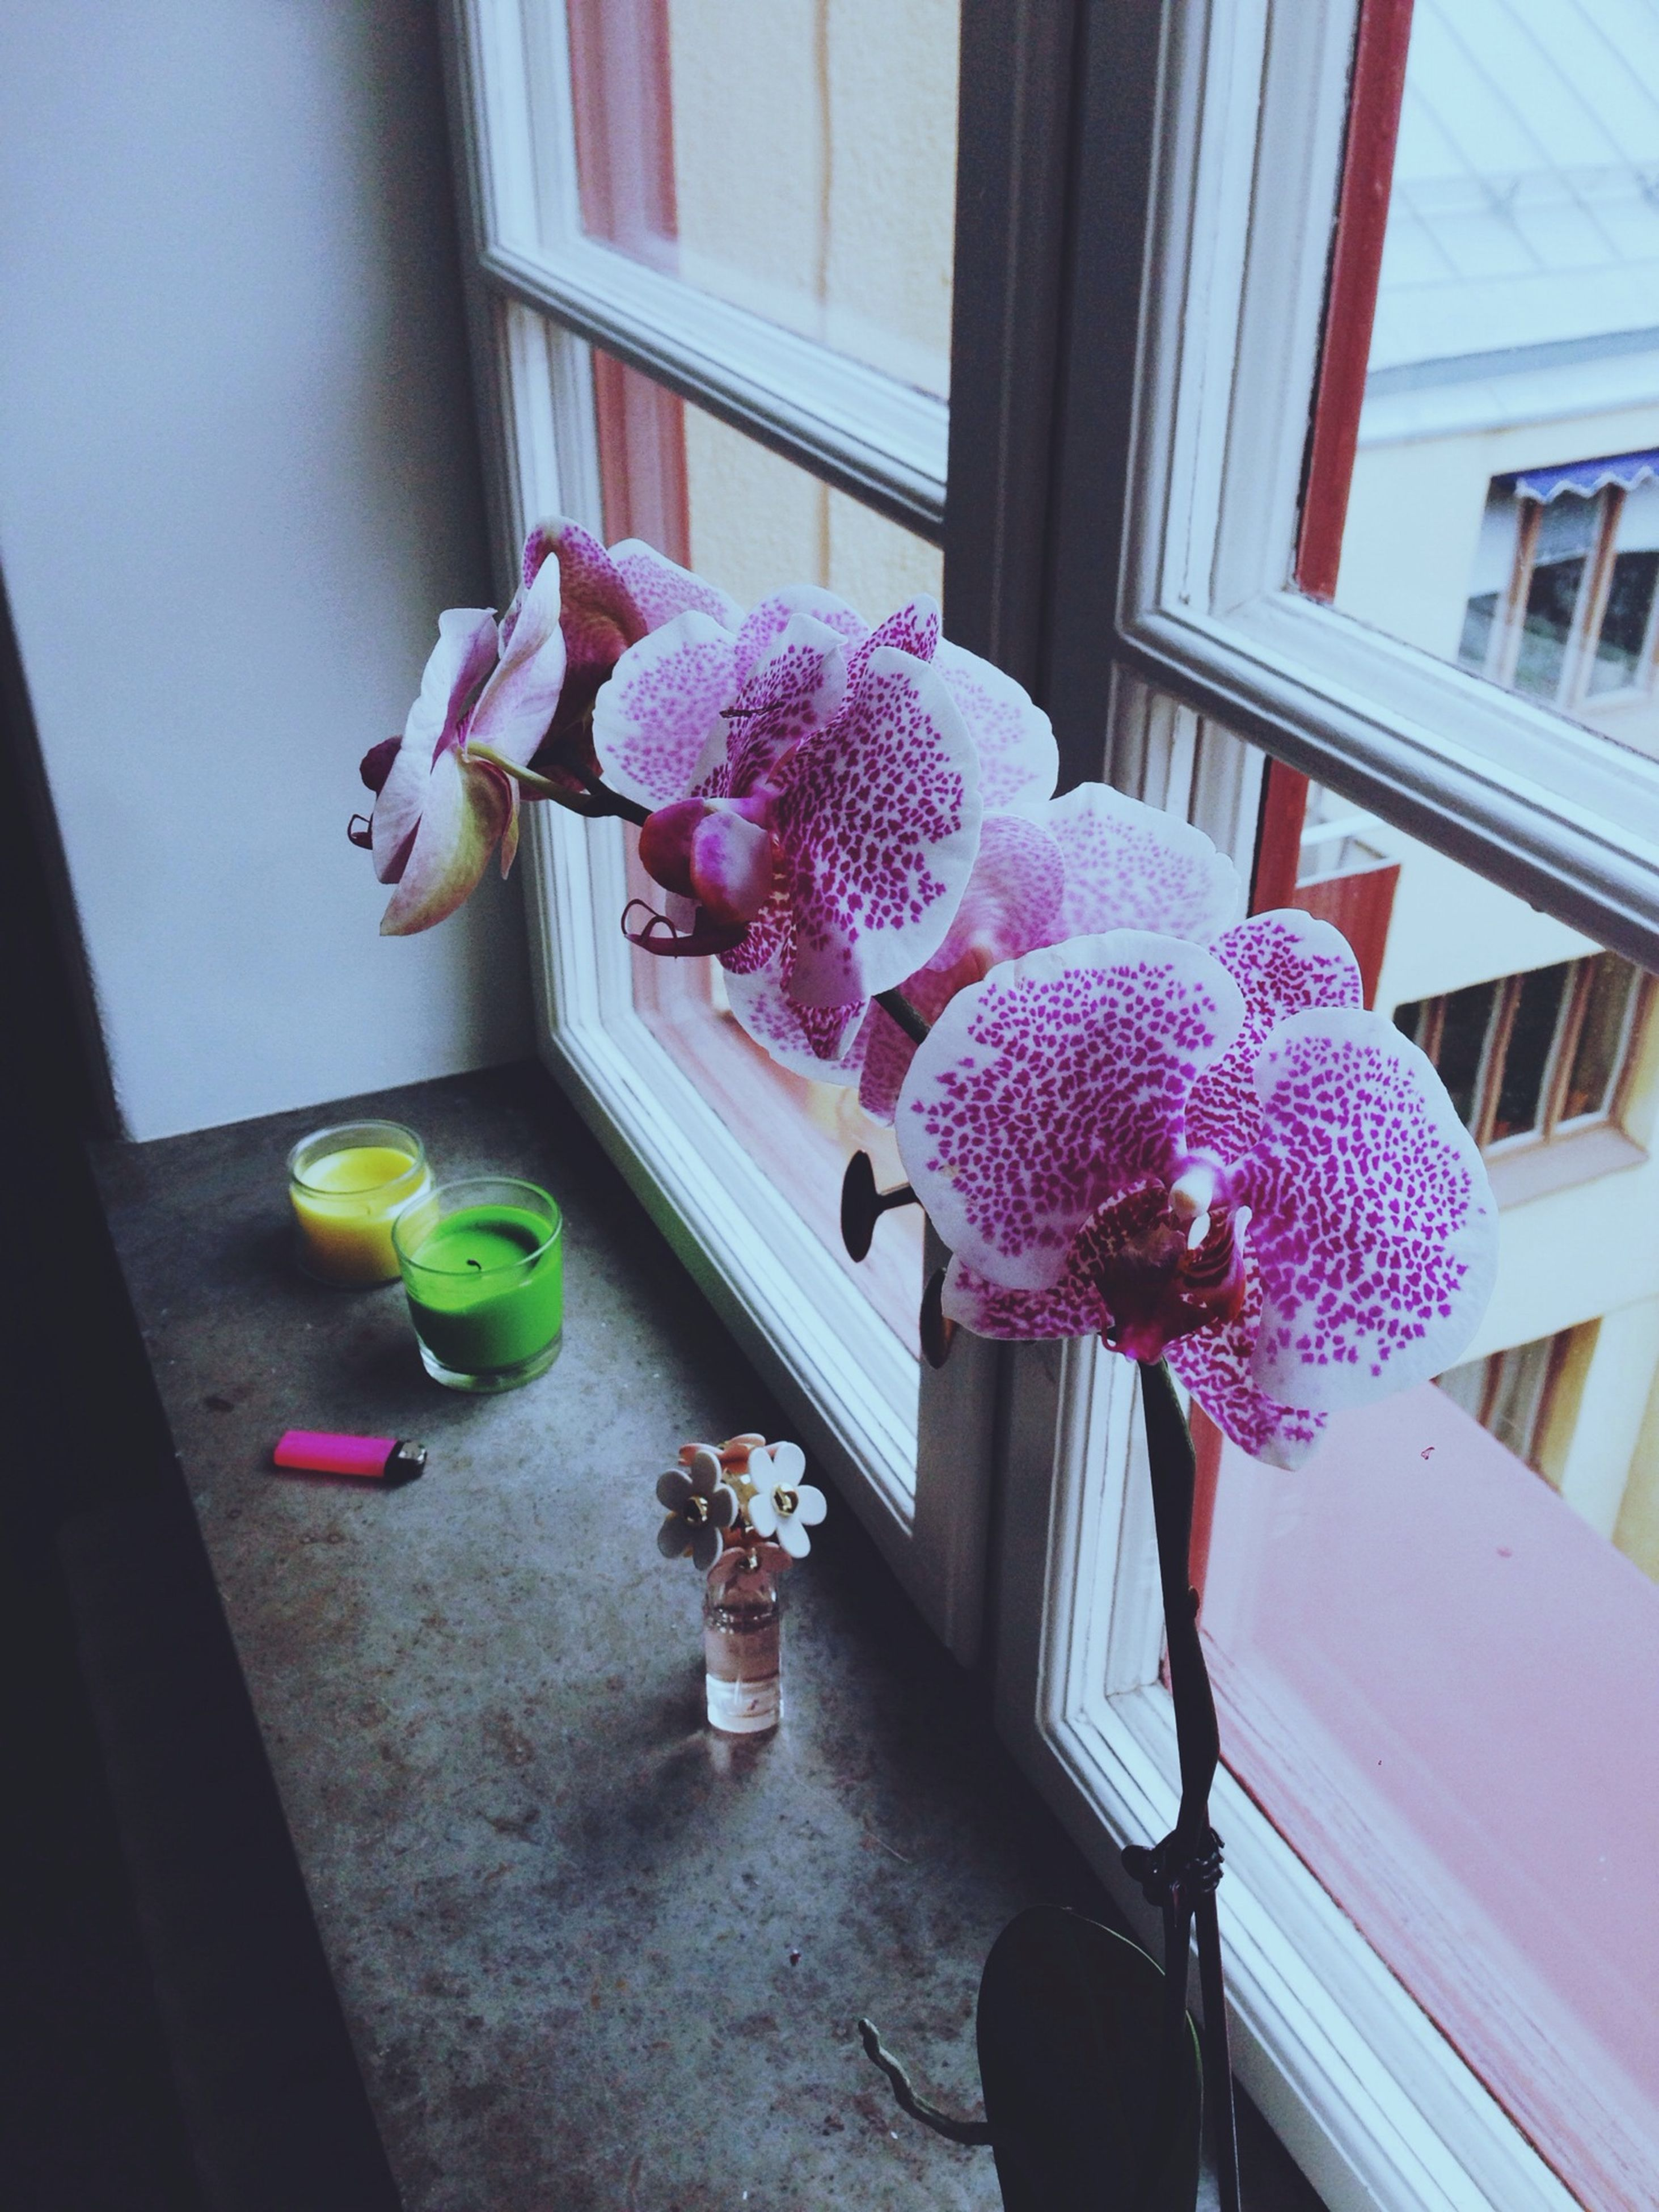 flower, indoors, window, pink color, potted plant, home interior, built structure, architecture, vase, glass - material, freshness, table, fragility, window sill, house, multi colored, flower pot, purple, decoration, plant